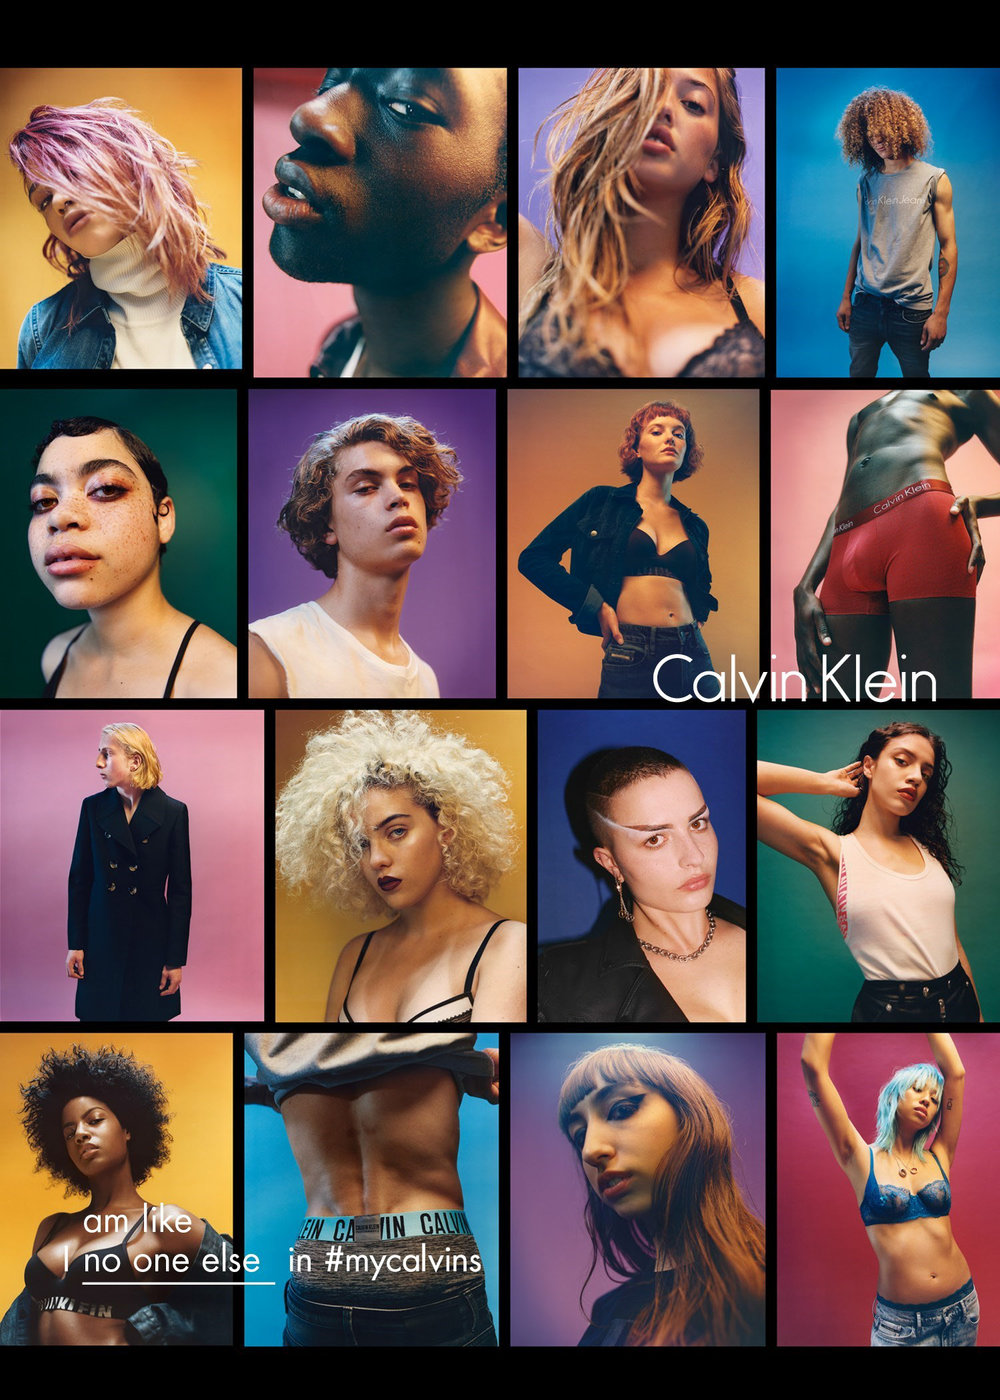 so-it-goes-calvin-klein-aw16-campaign-2.jpg